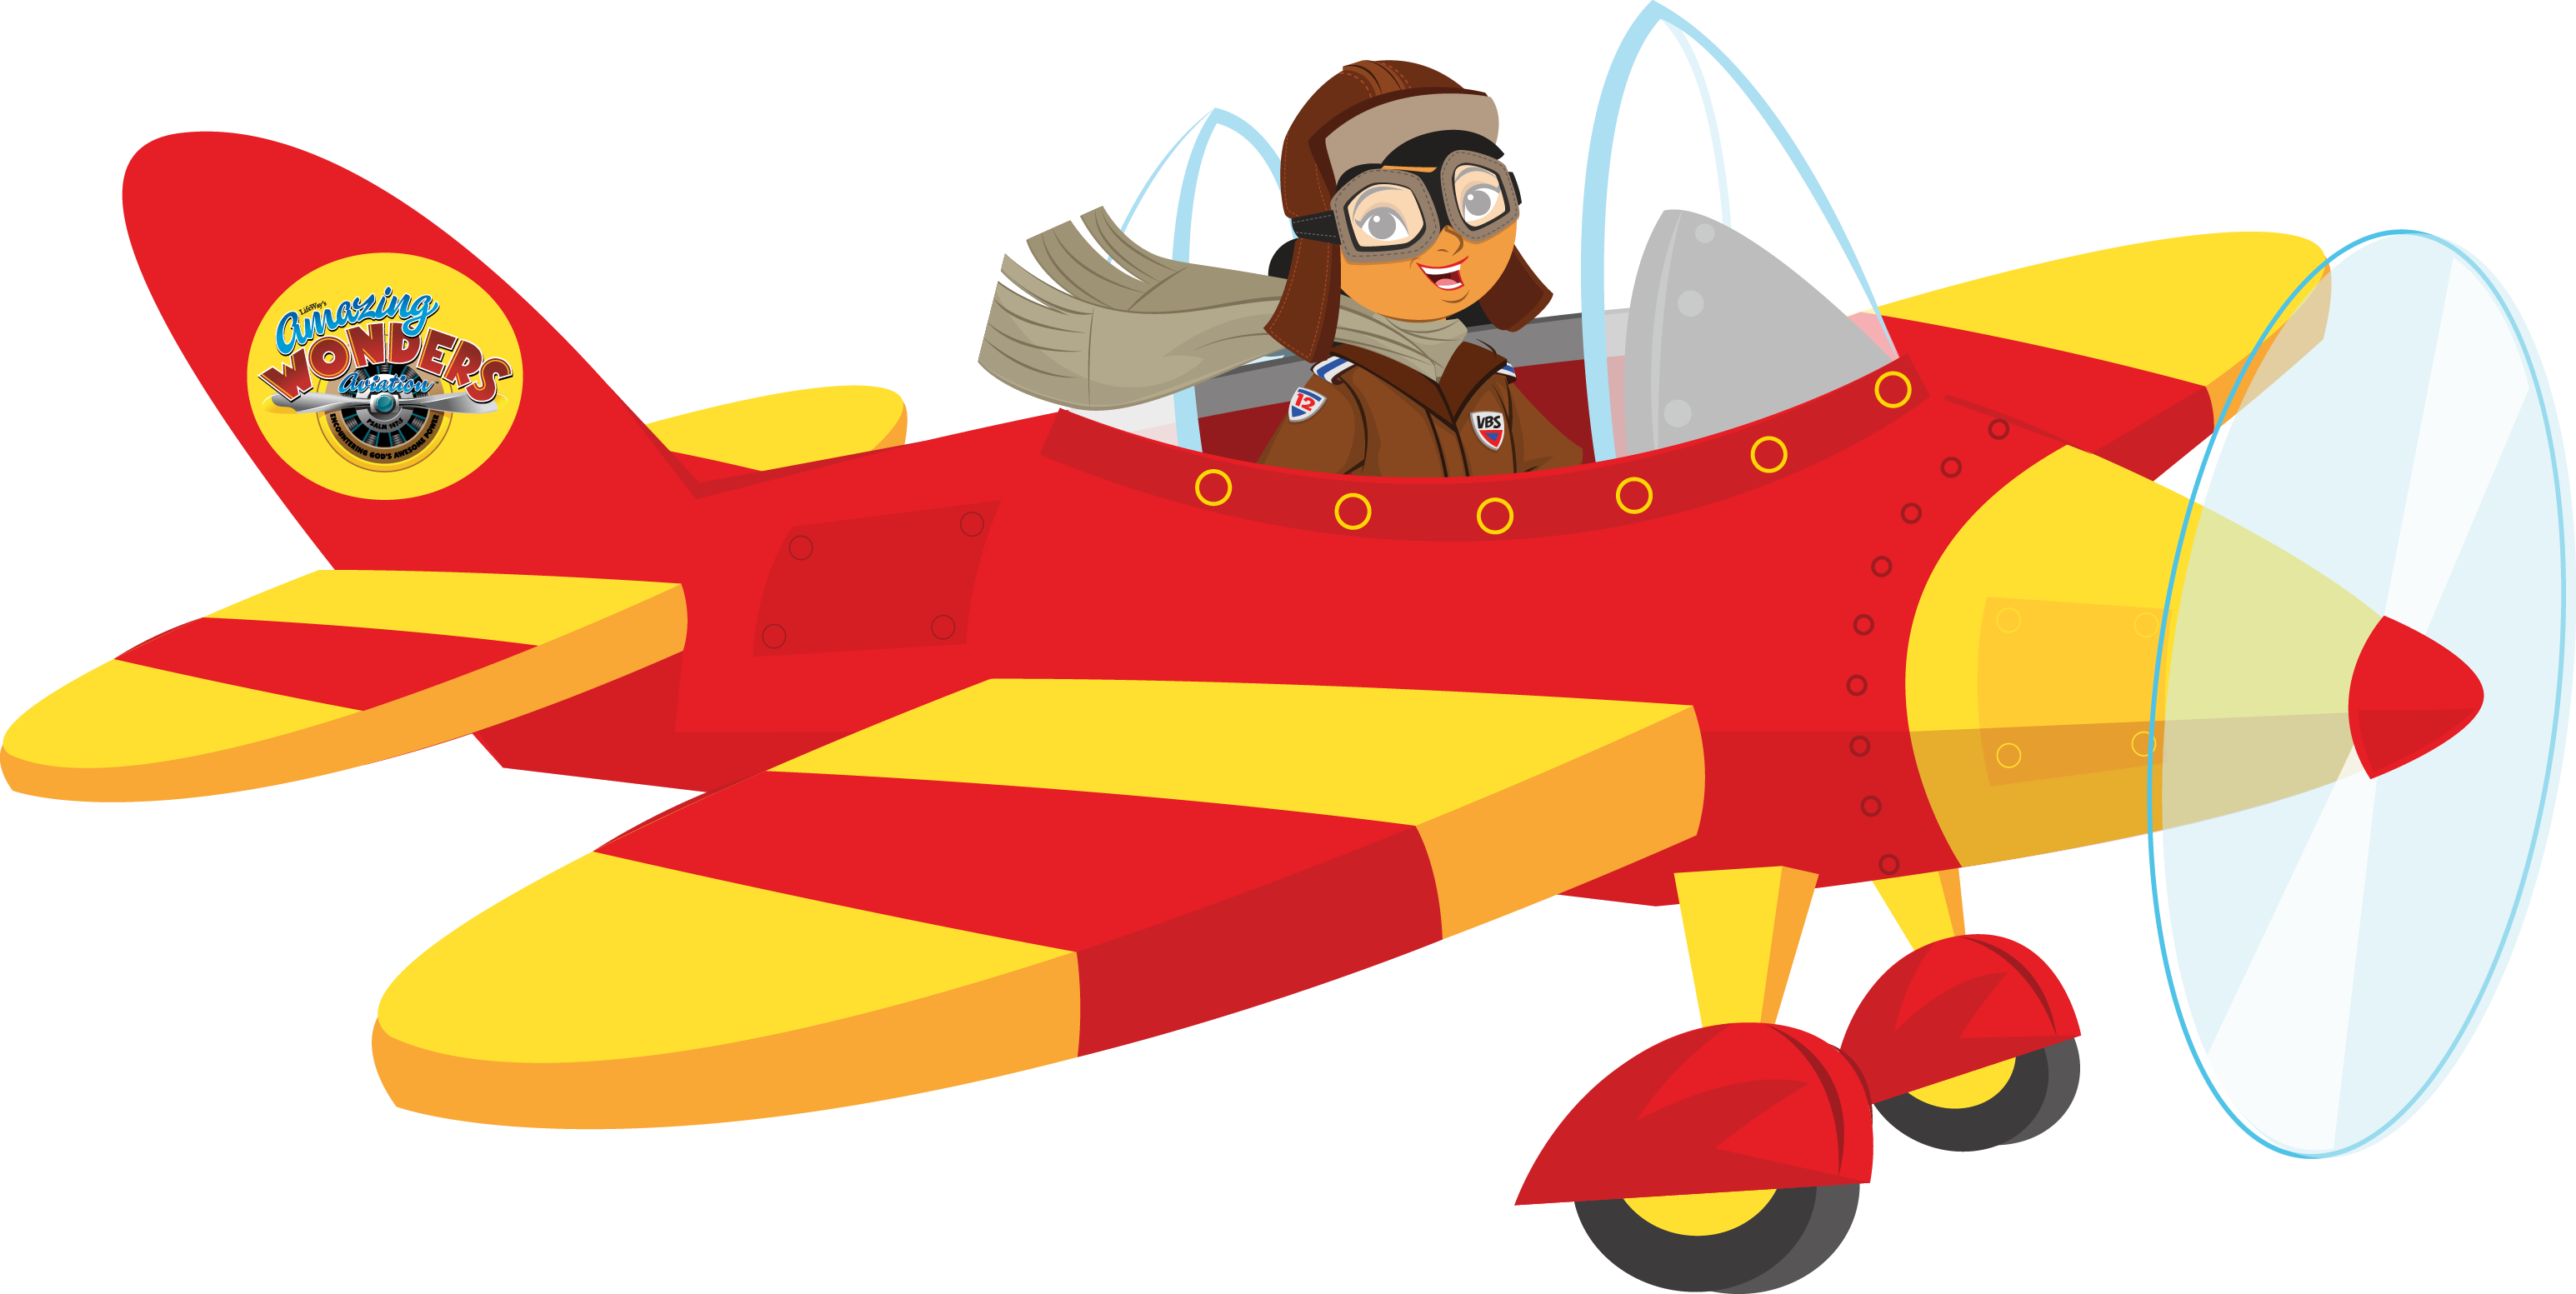 Biplane clipart yellow airplane. Toy plane clip art